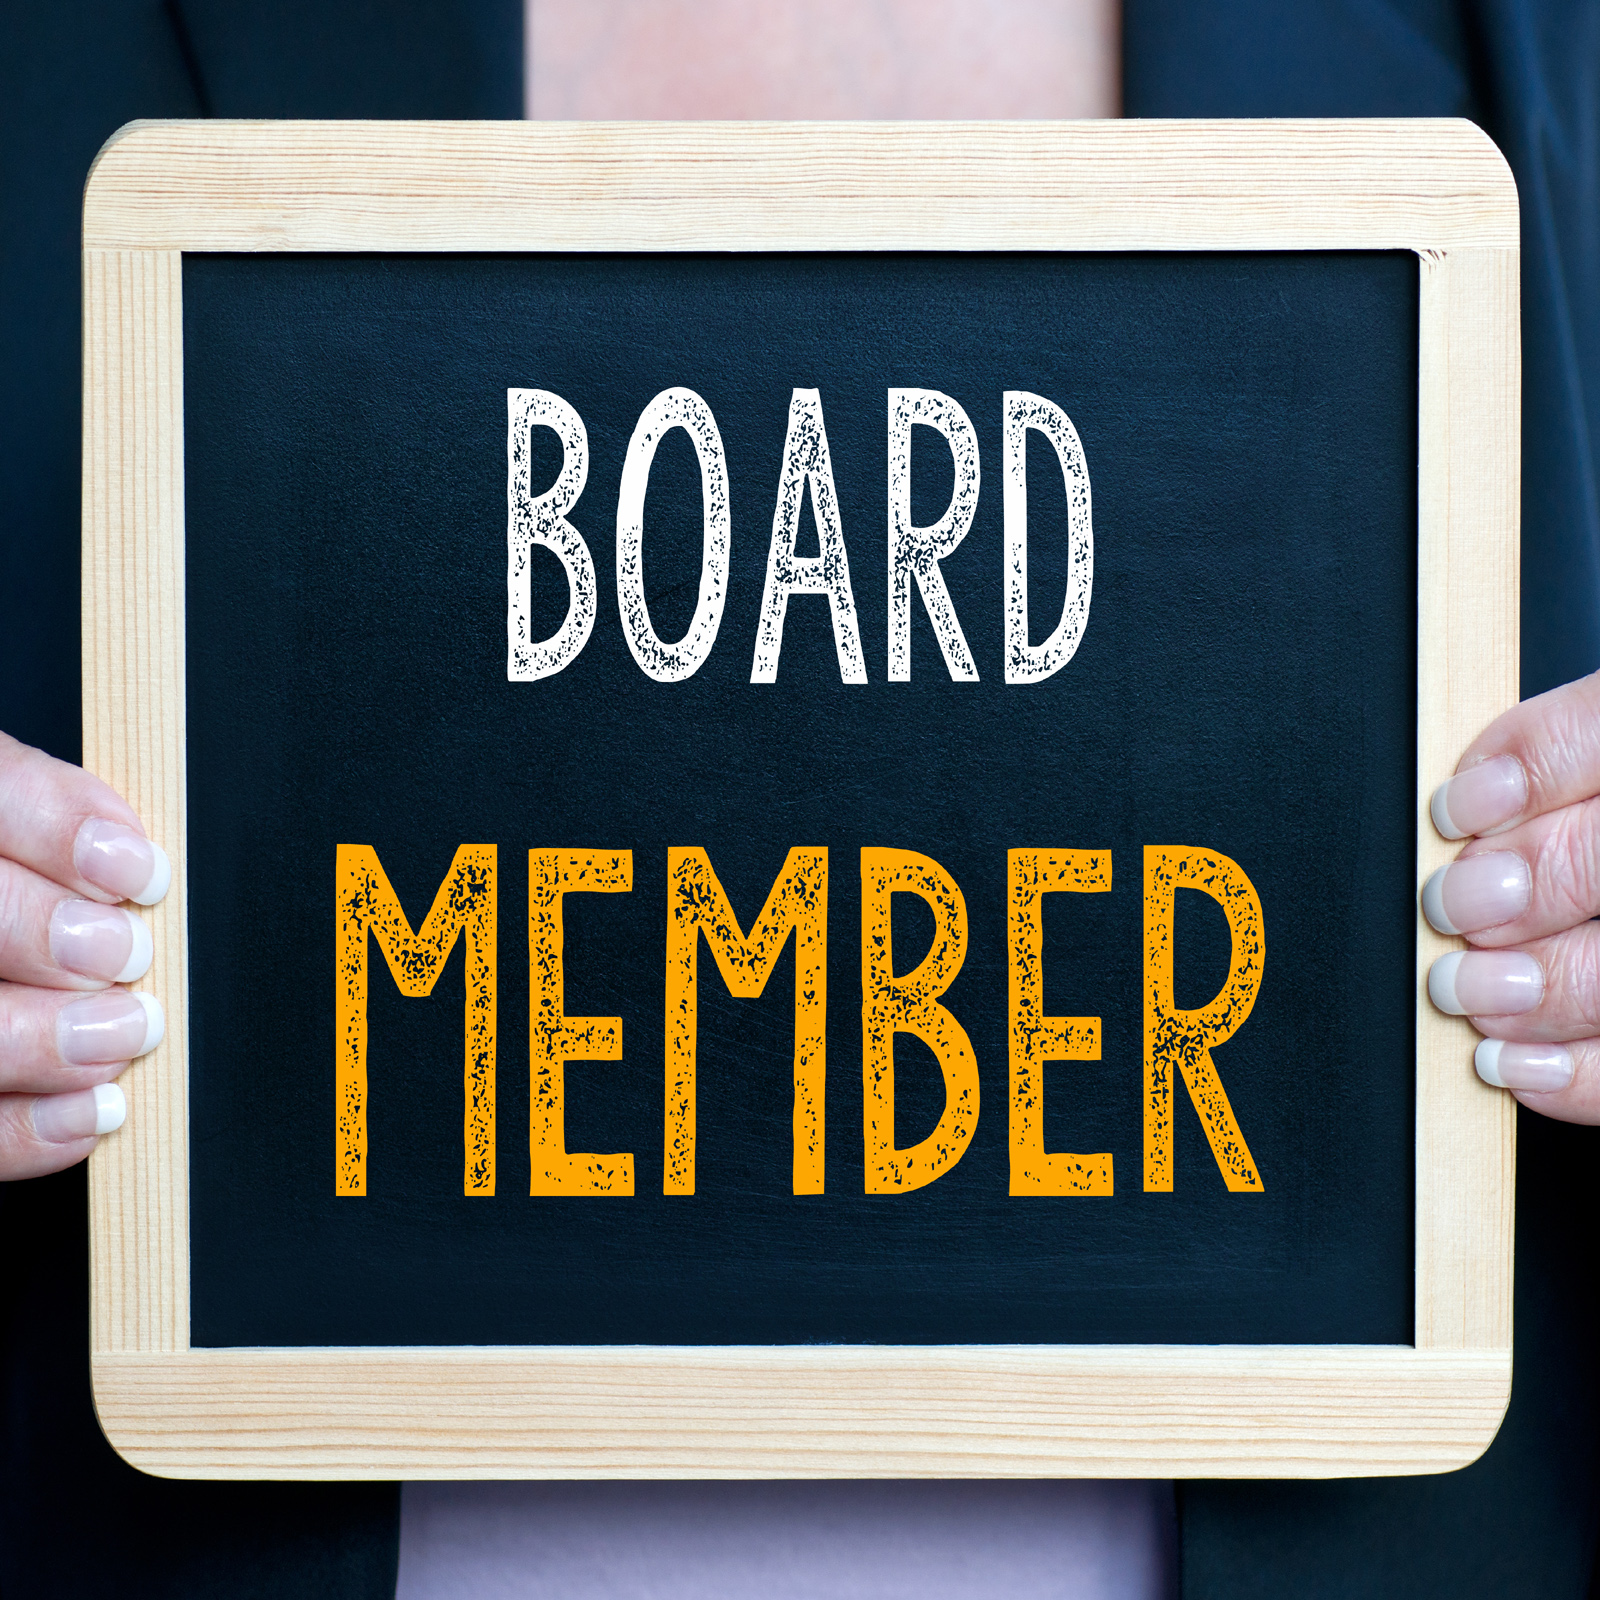 43 Women Nominated for the Board of the Swiss Crypto Valley Association